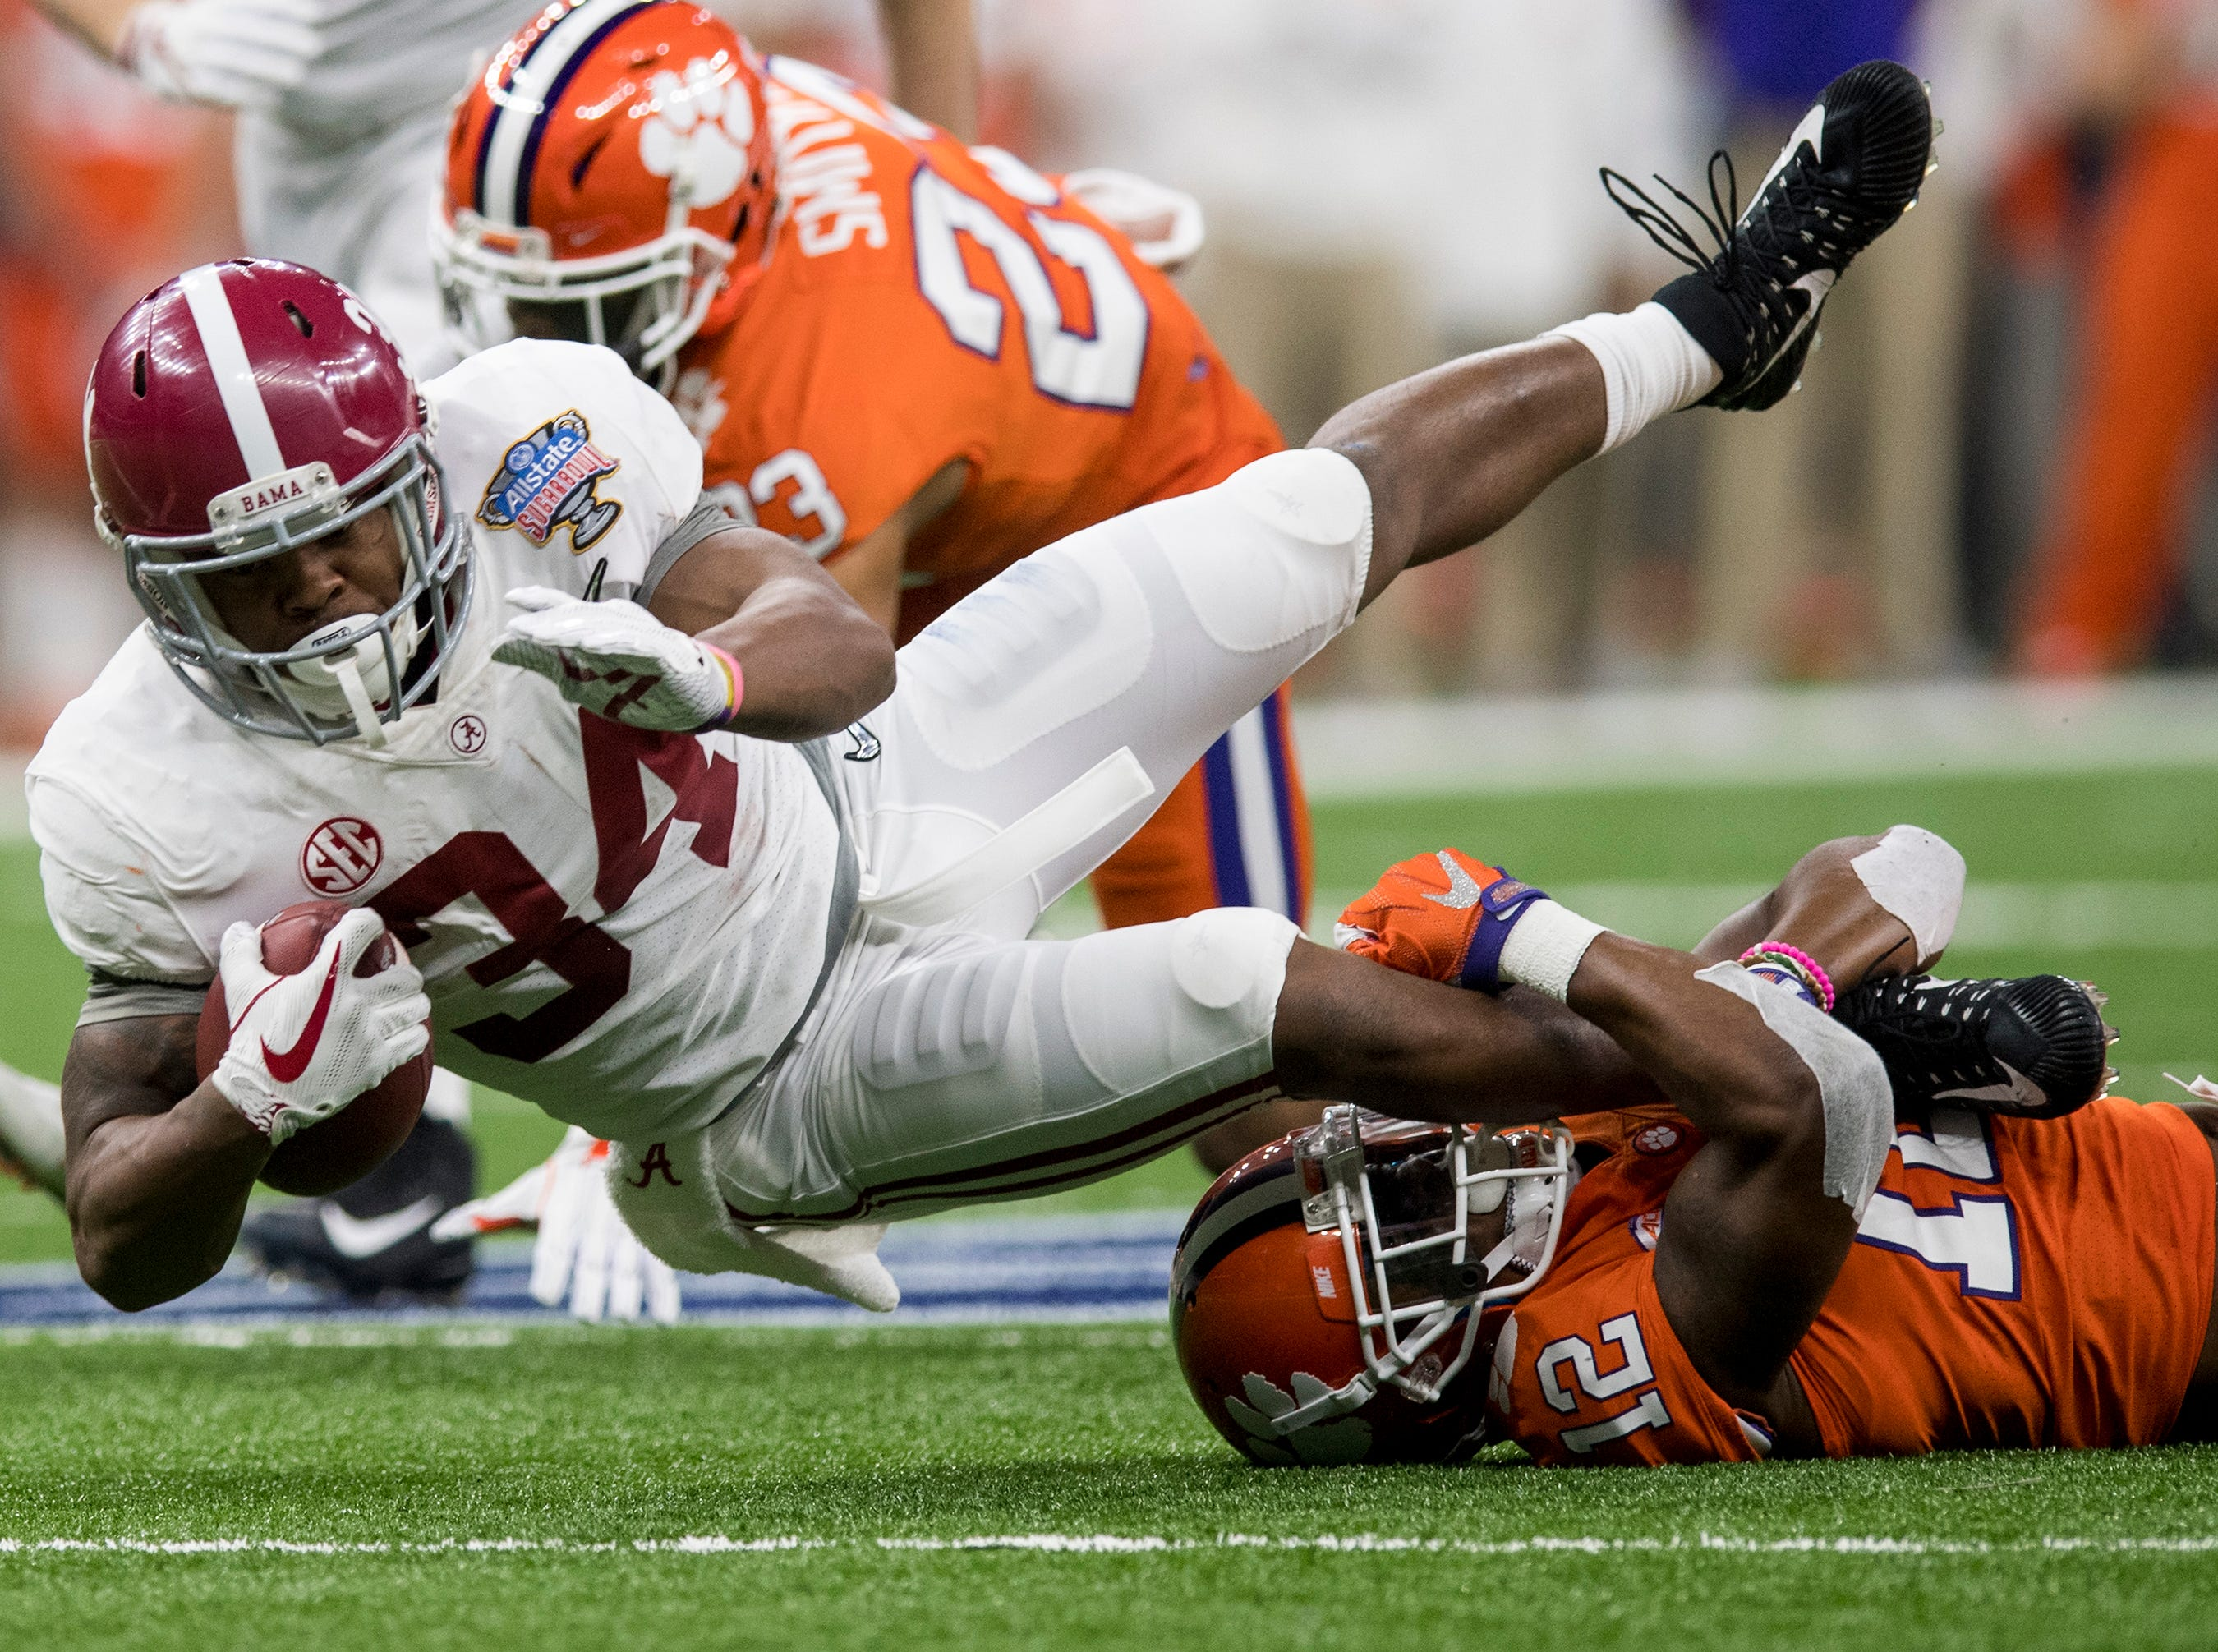 Clemson defensive back K'Von Wallace (12) stops Alabama running back Damien Harris (34) after a big gain in first half action in the Sugar Bowl at the Superdome in New Orleans, La. on Monday January 1, 2018.